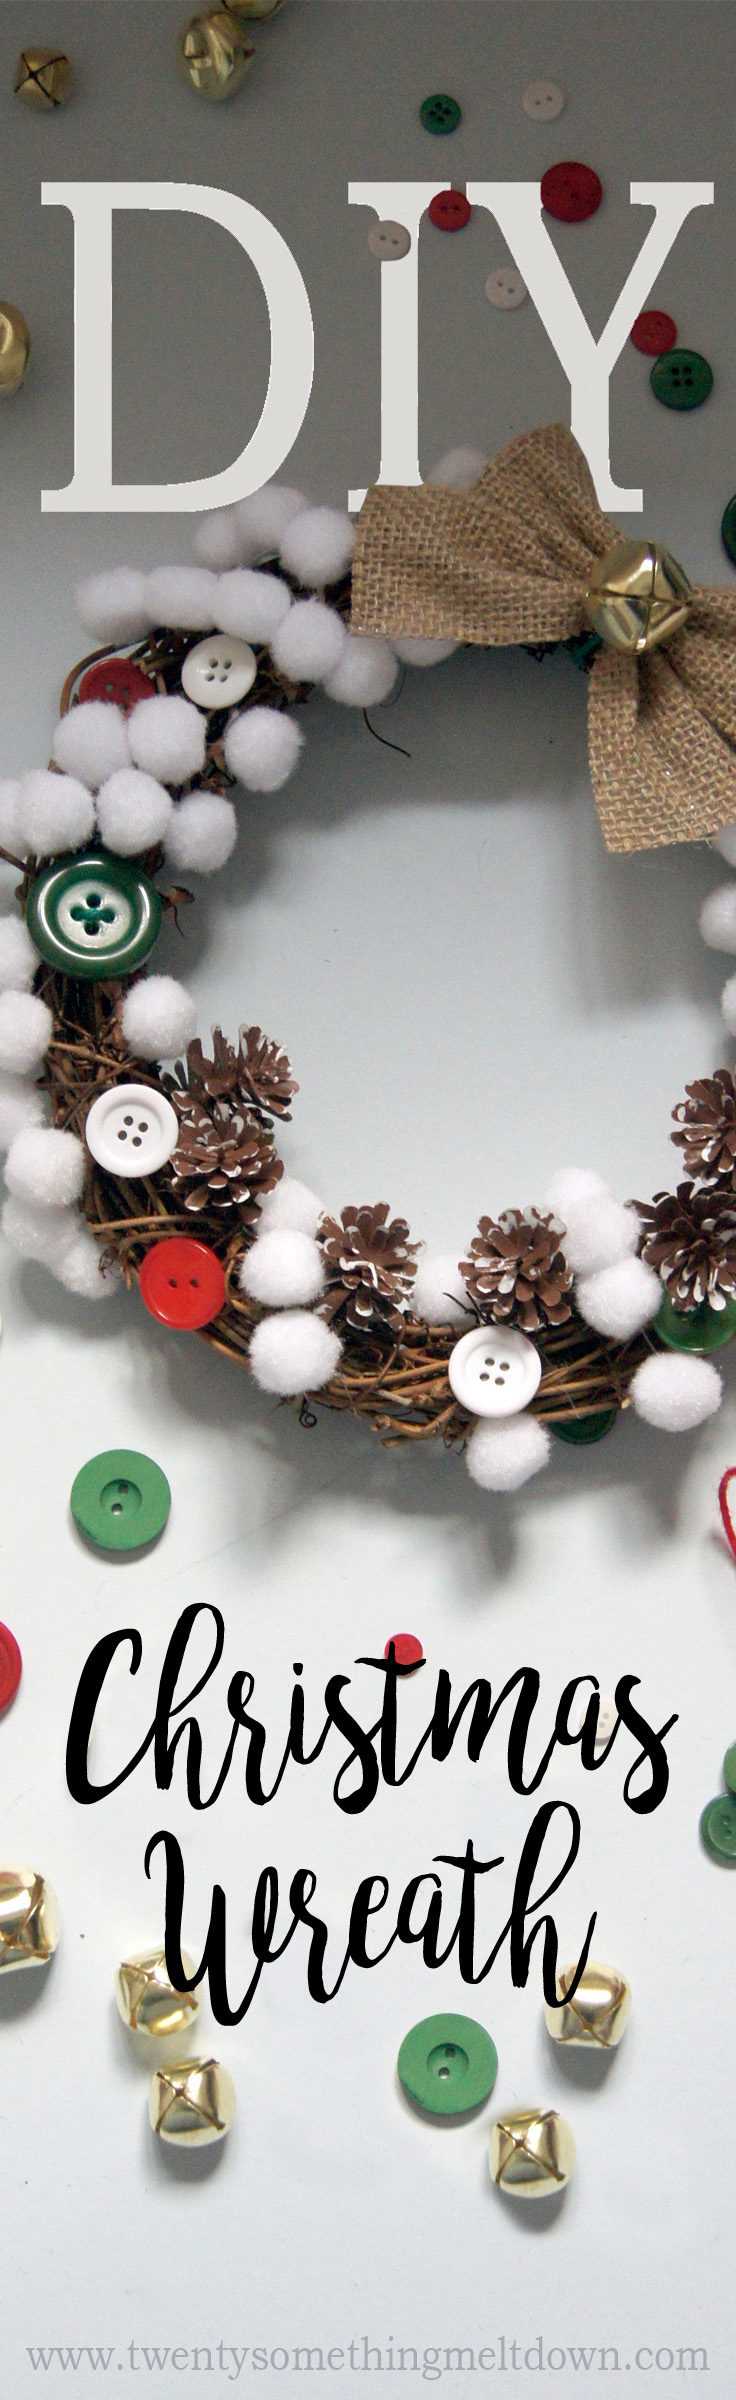 Diy christmas wreath twenty something meltdown pin me for later solutioingenieria Images